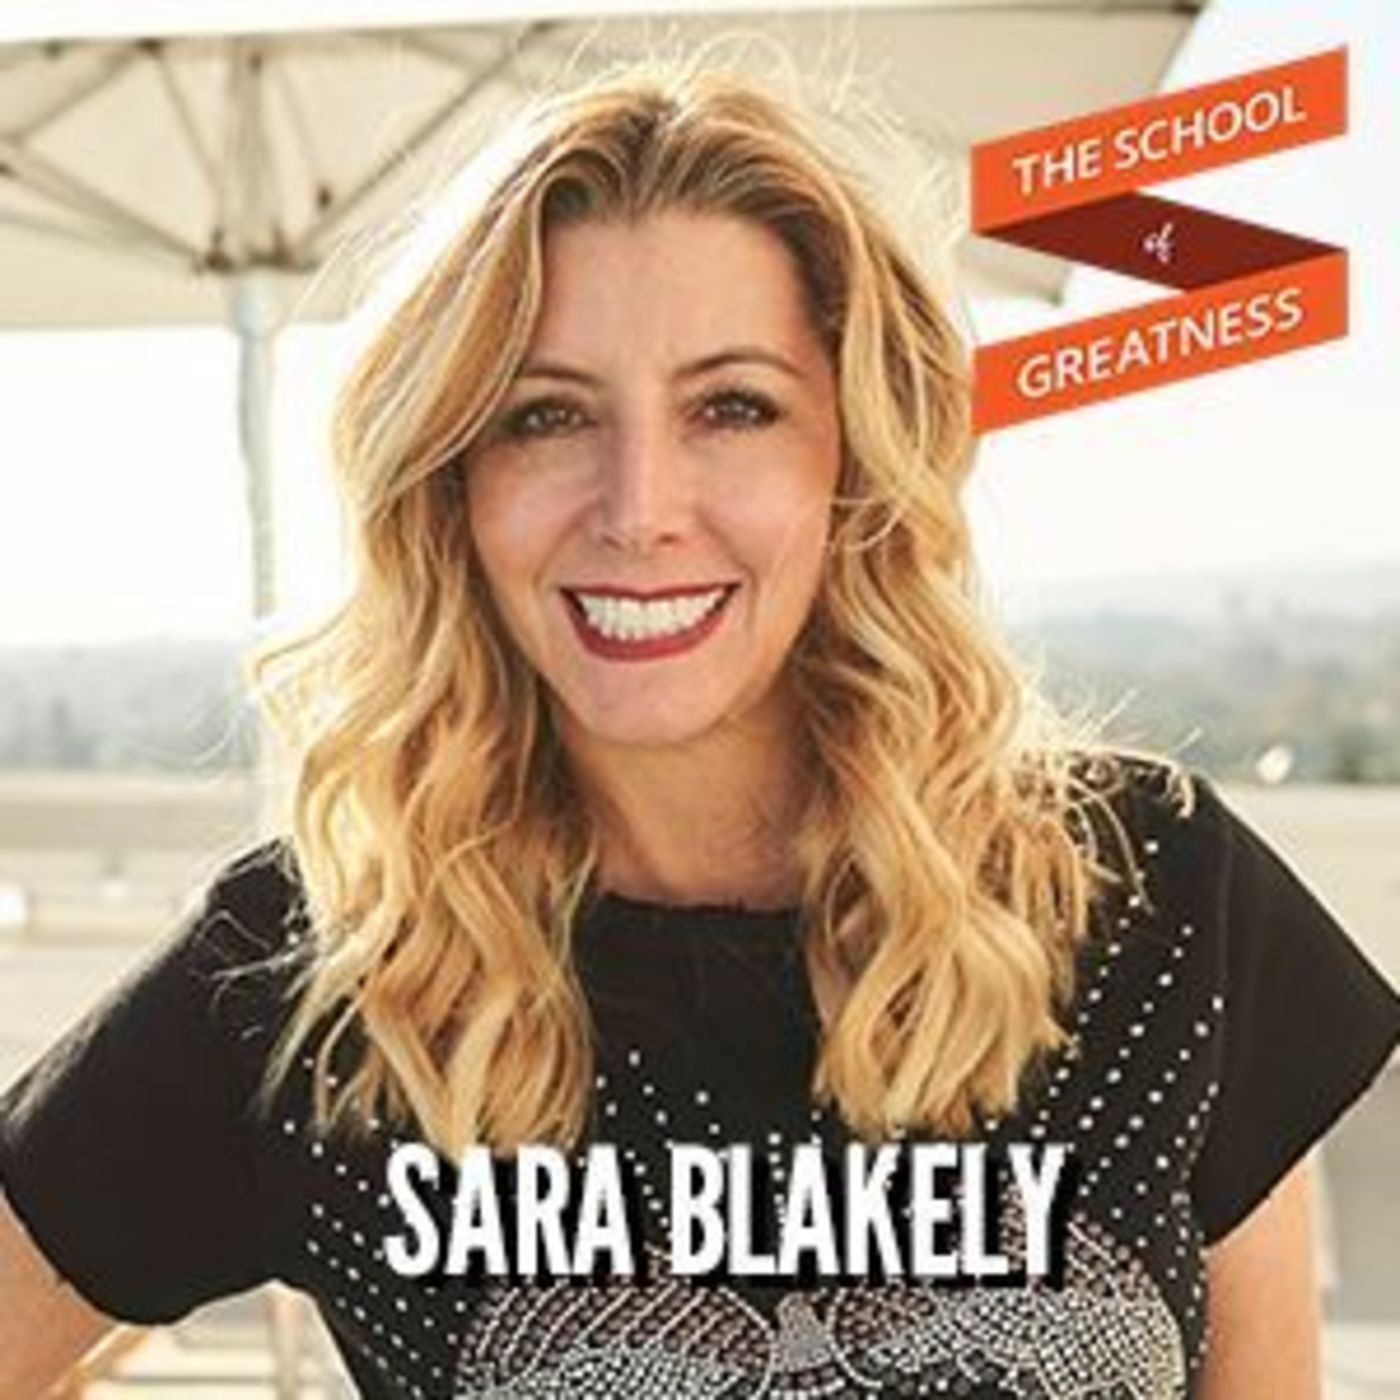 Sara Blakely: SPANX CEO on Writing Your Billion Dollar Story